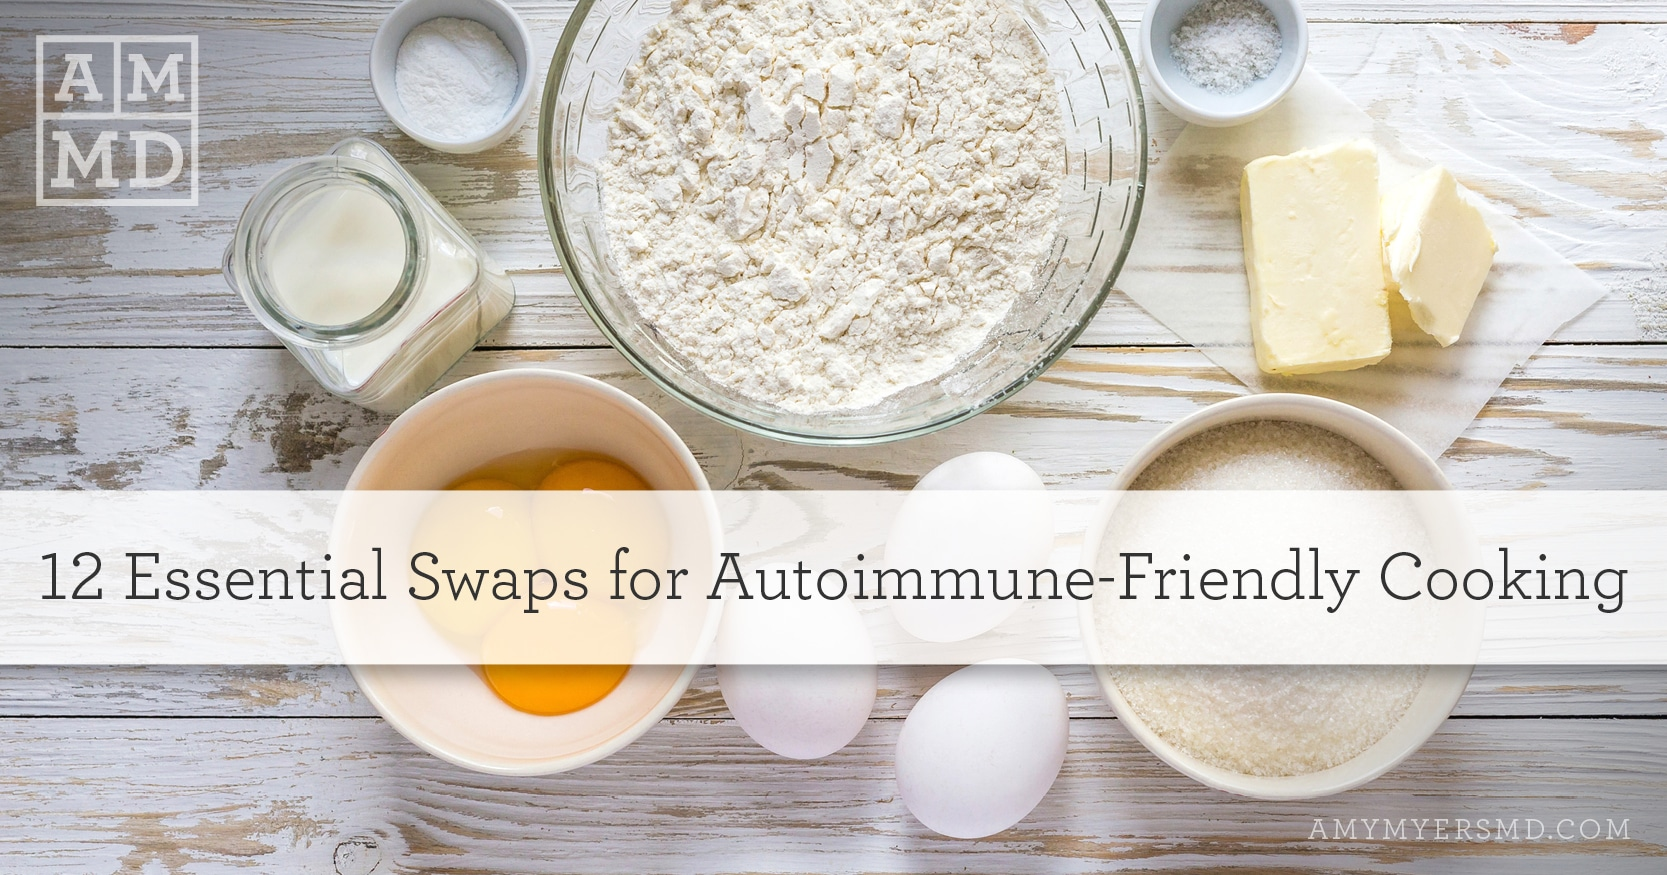 12 Essential Swaps for Autoimmune-Friendly Cooking - Cooking Ingredients - Amy Myers MD